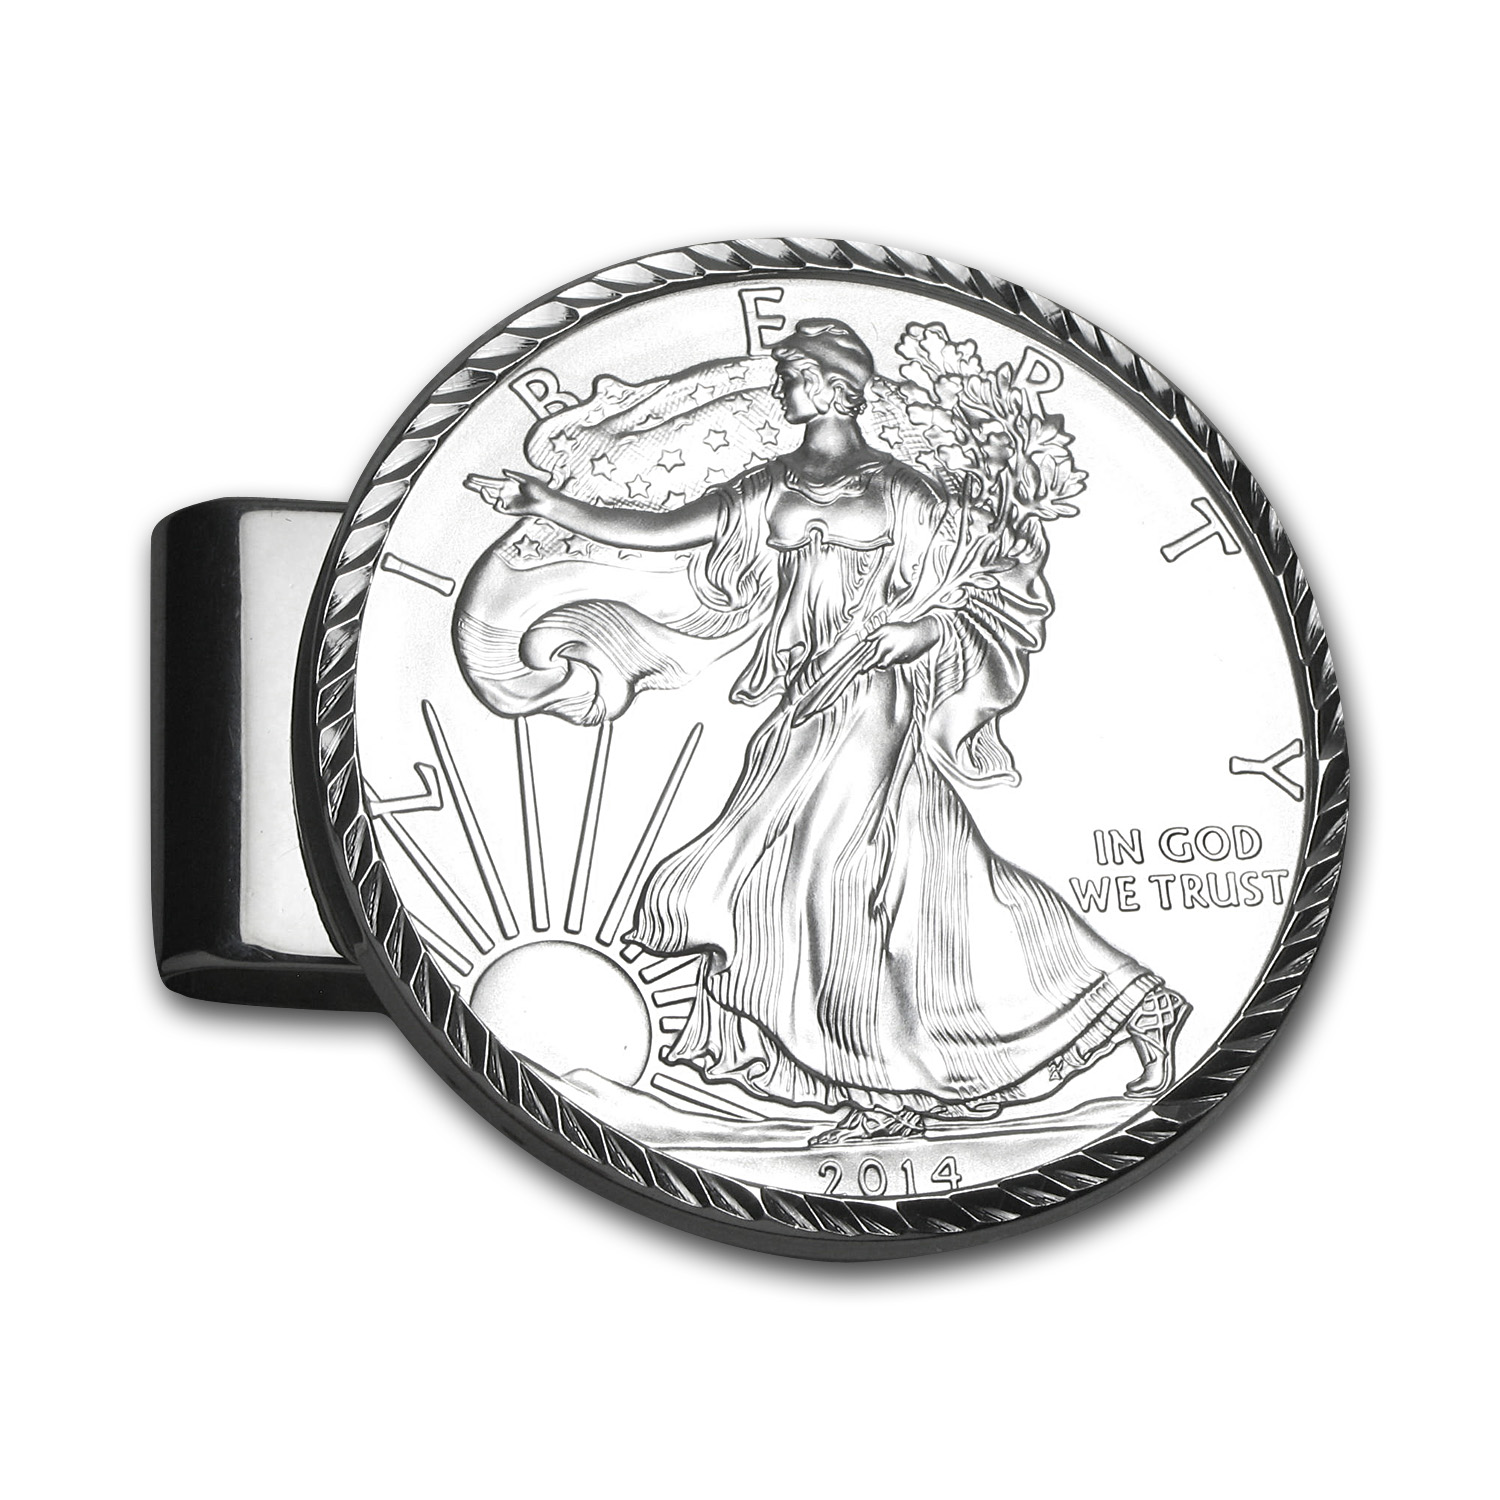 2014 1 oz Silver Eagle Diamond-Cut Money Clip